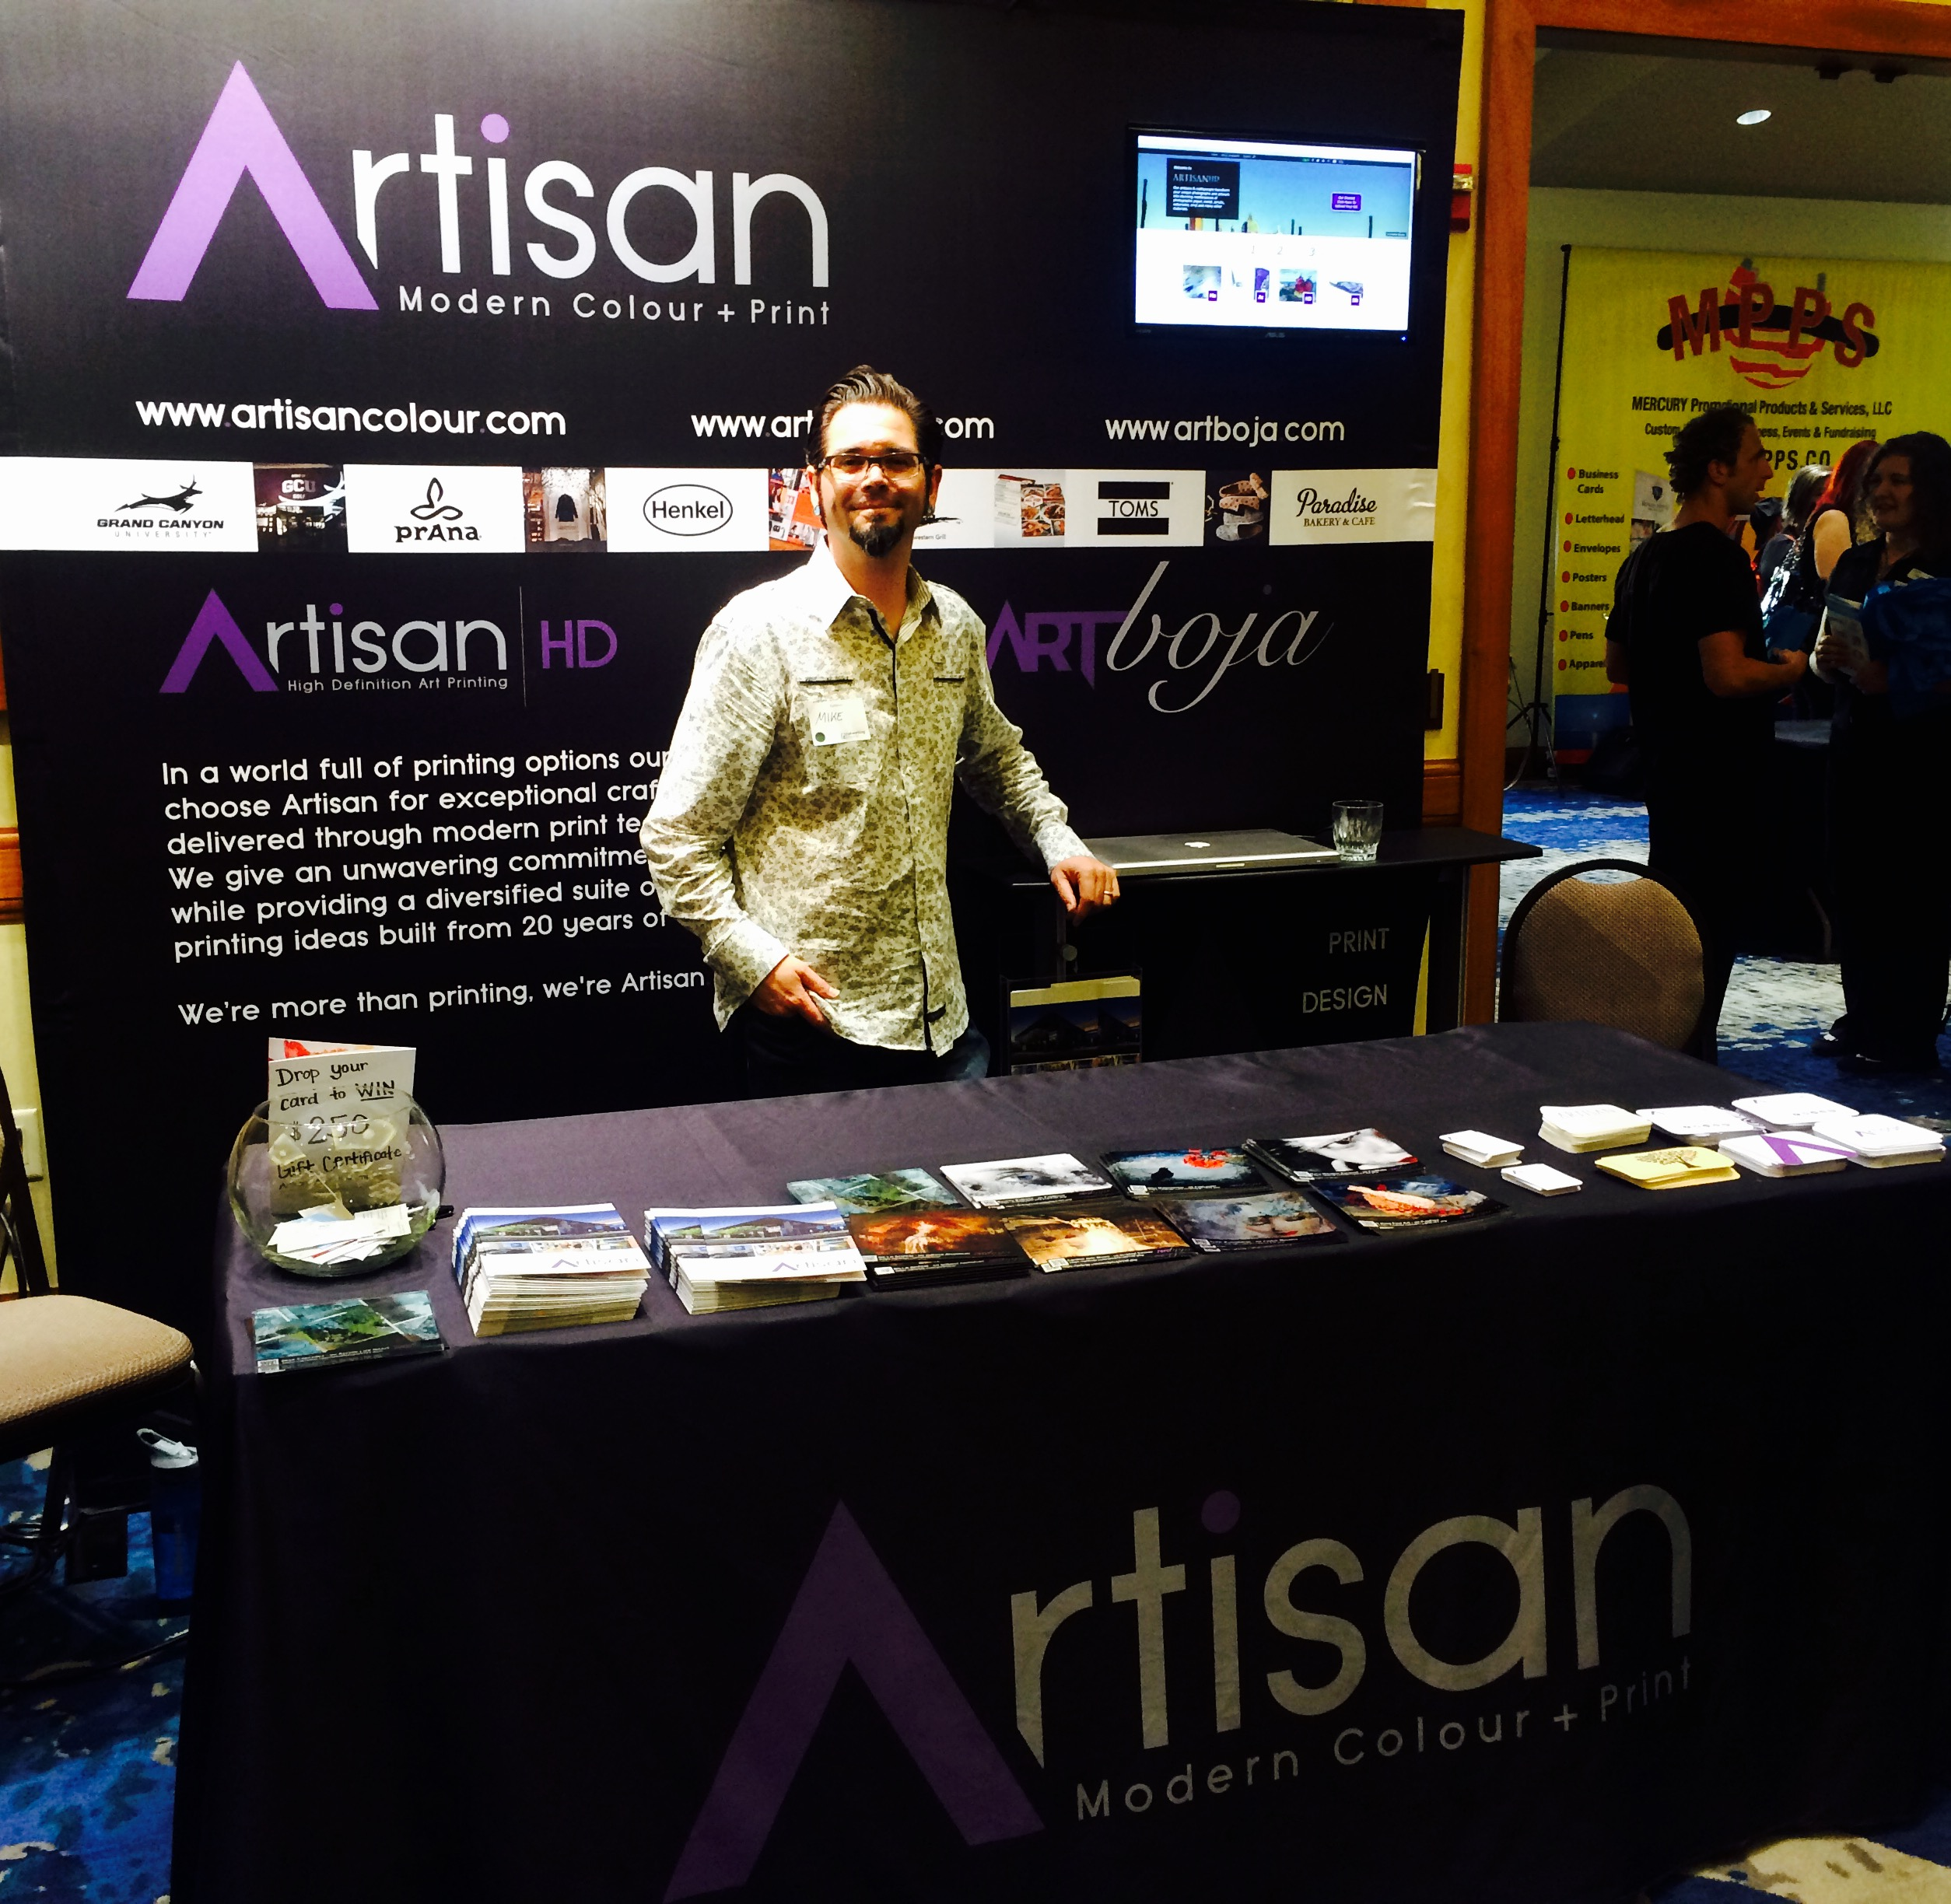 ArtisanHD showing off new booth back-drop at Phoenix Networking Signature Event